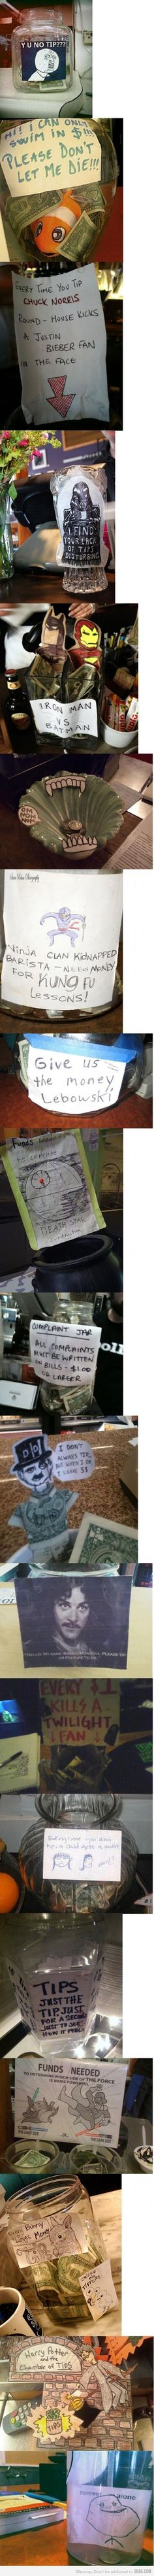 Creative ways to get people to tip... Really funny!